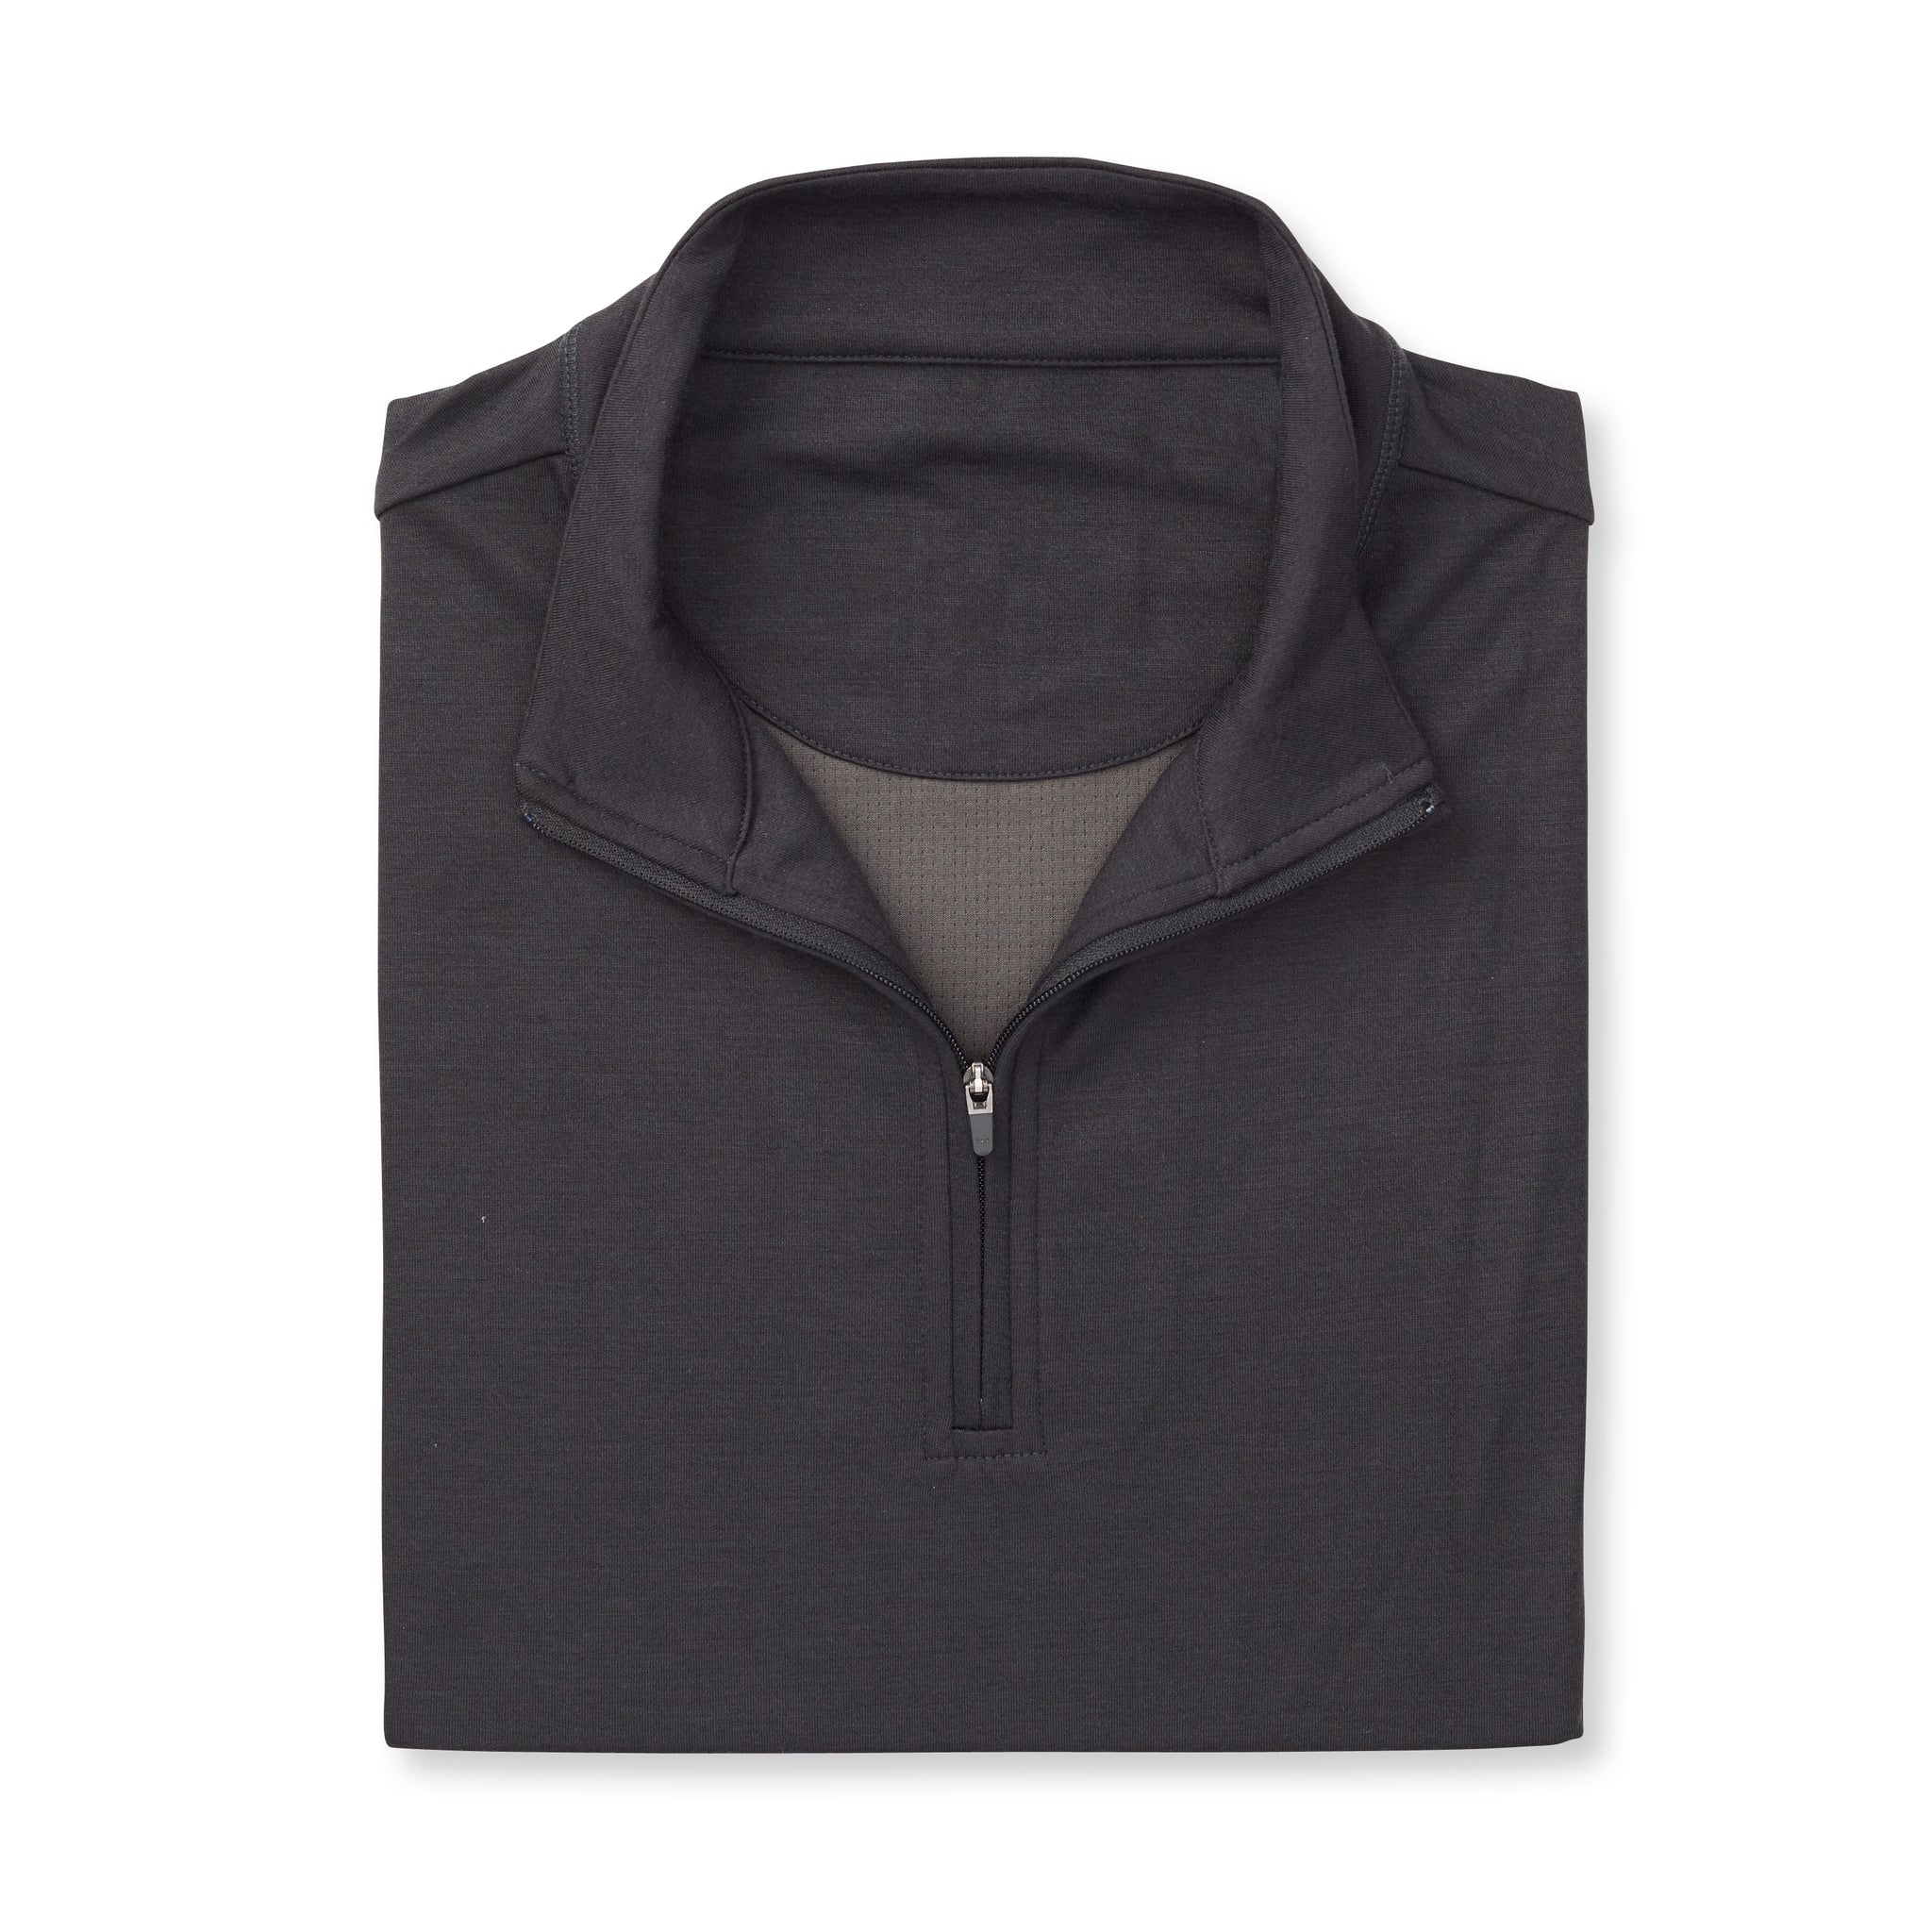 LOFTEC Half Zip Jacket - Black IS66308HZ